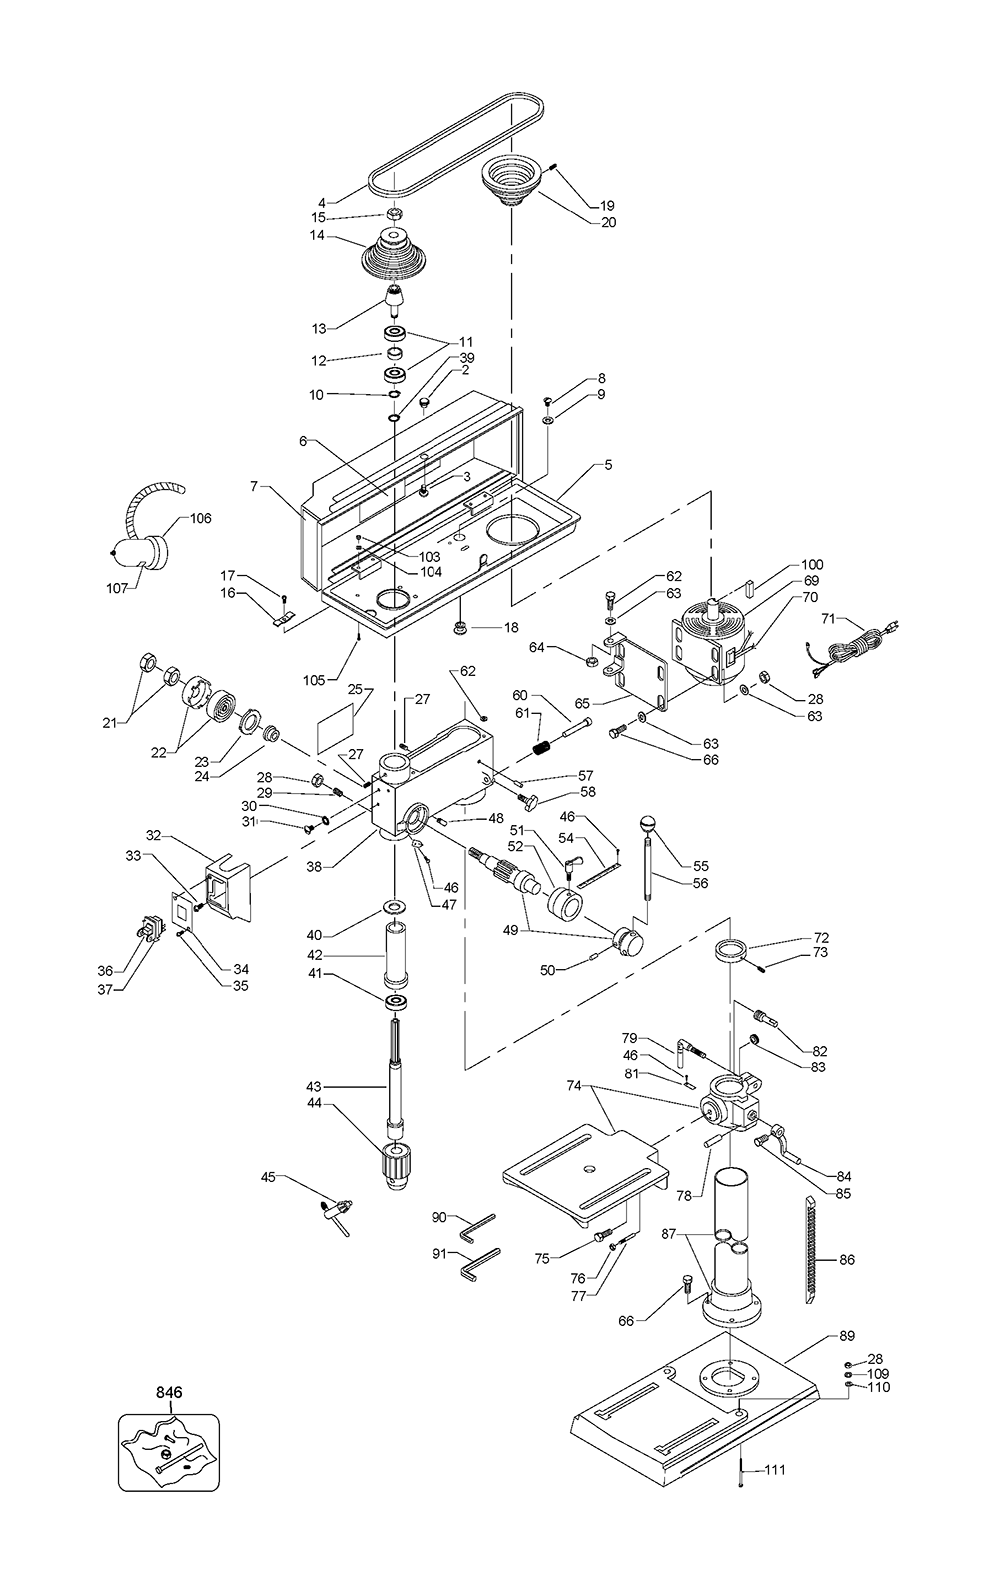 Wiring Diagram For Air ConditionerDiagramWiring Diagrams Image - 1972 chevelle wiring diagram